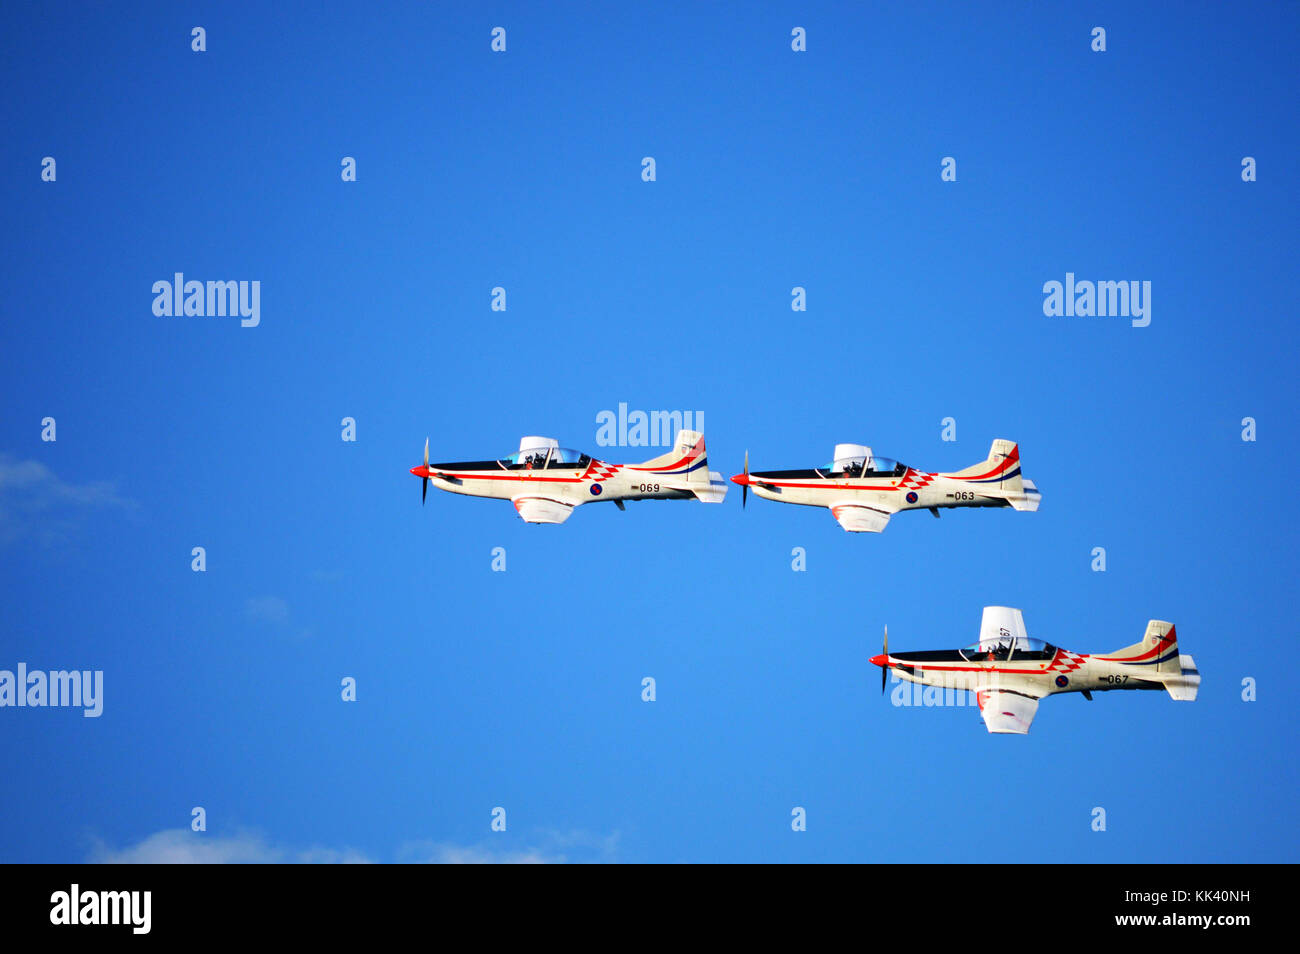 Croatian AF aerobatics team Krila Oluje (Wings of Storm) in a formation over Šibenik, Croatia - Stock Image